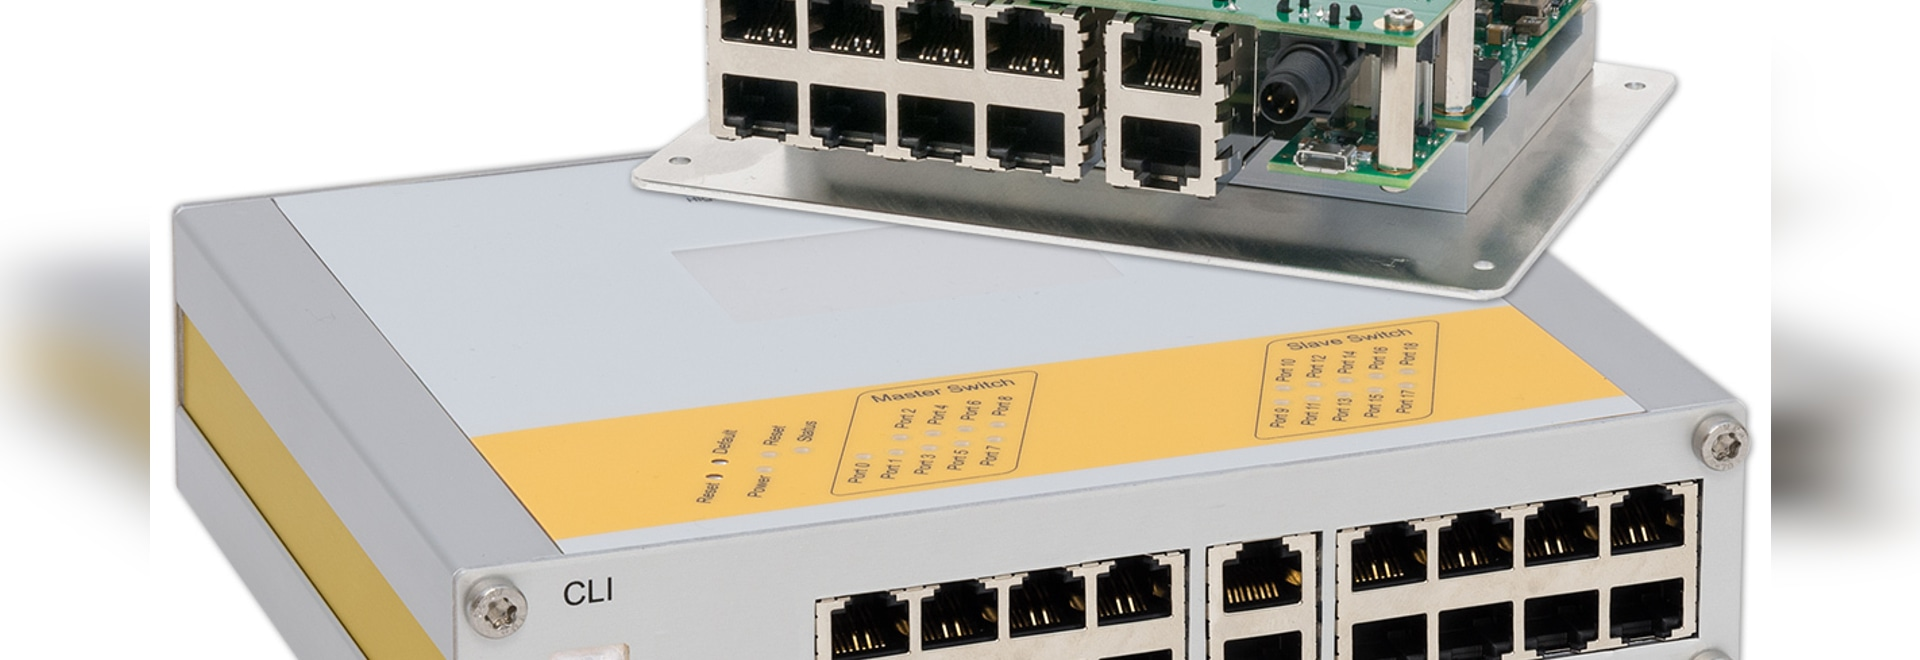 uMAGBES 10- and 19-port Switch